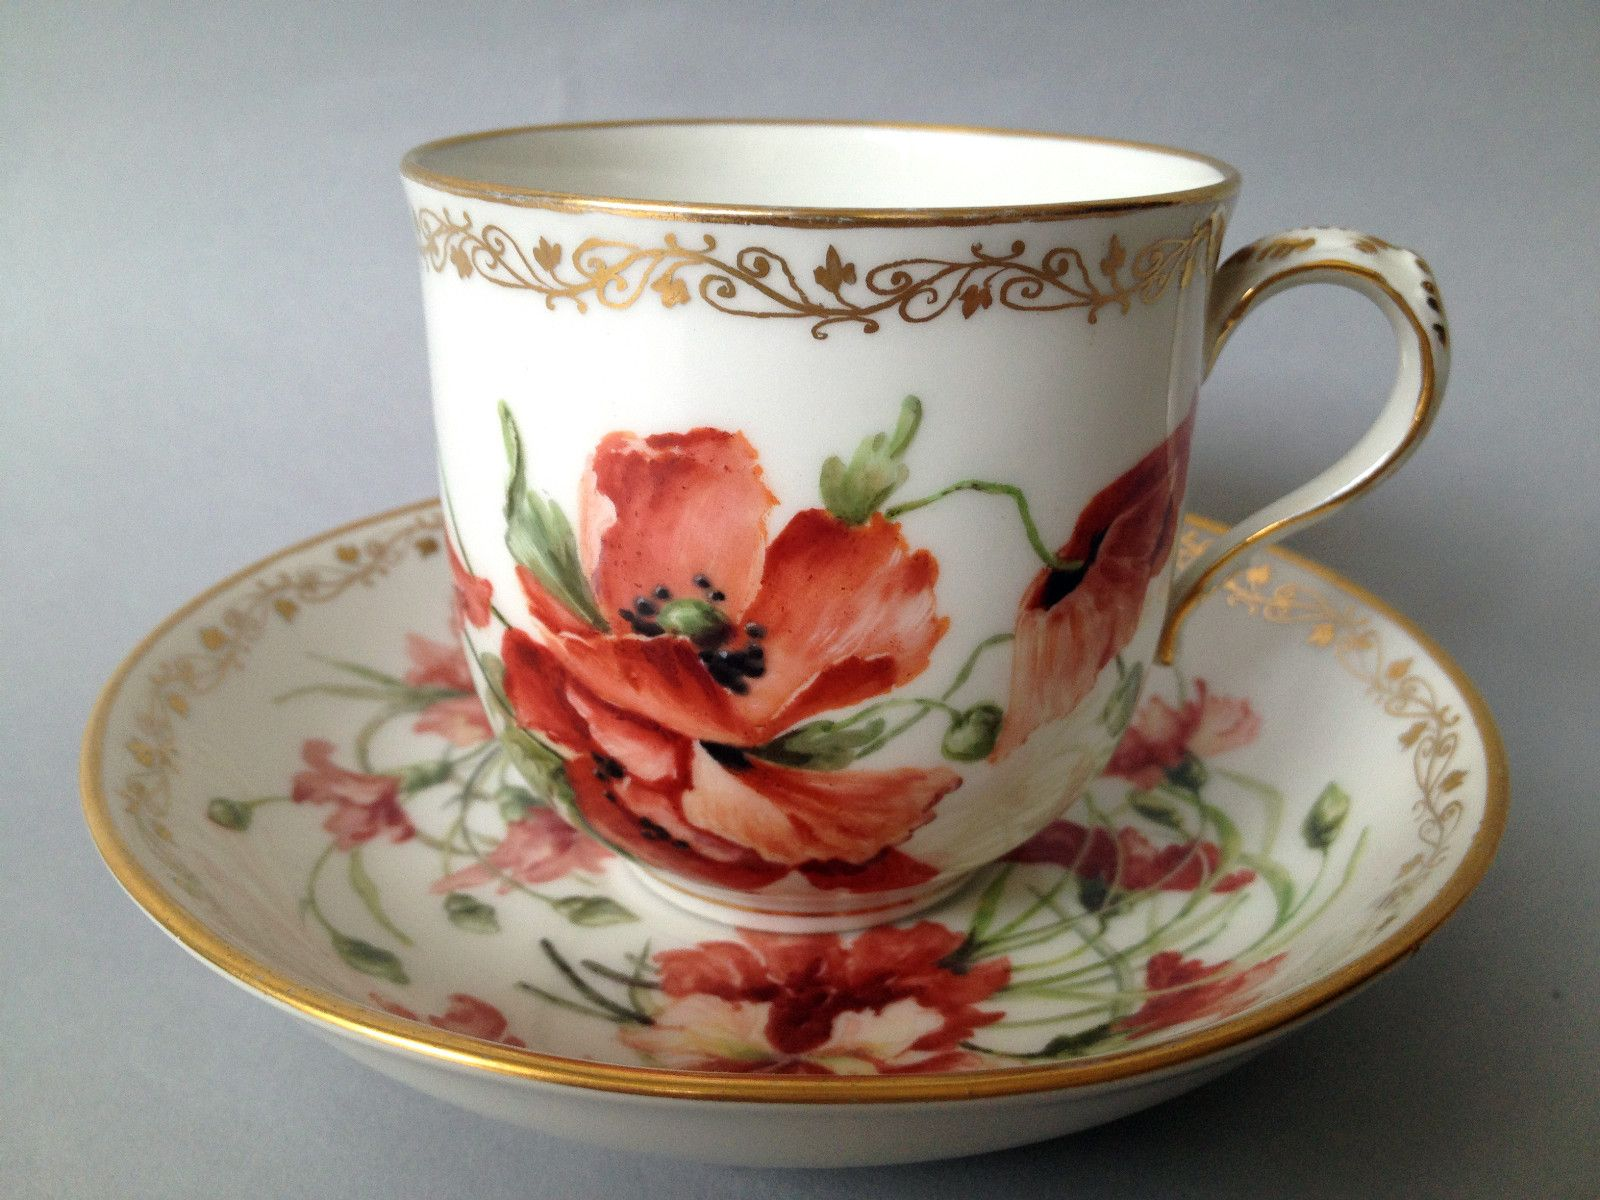 stunning 19th century berlin hand painted porcelain cup and saucer sammeltassen porzellan und. Black Bedroom Furniture Sets. Home Design Ideas